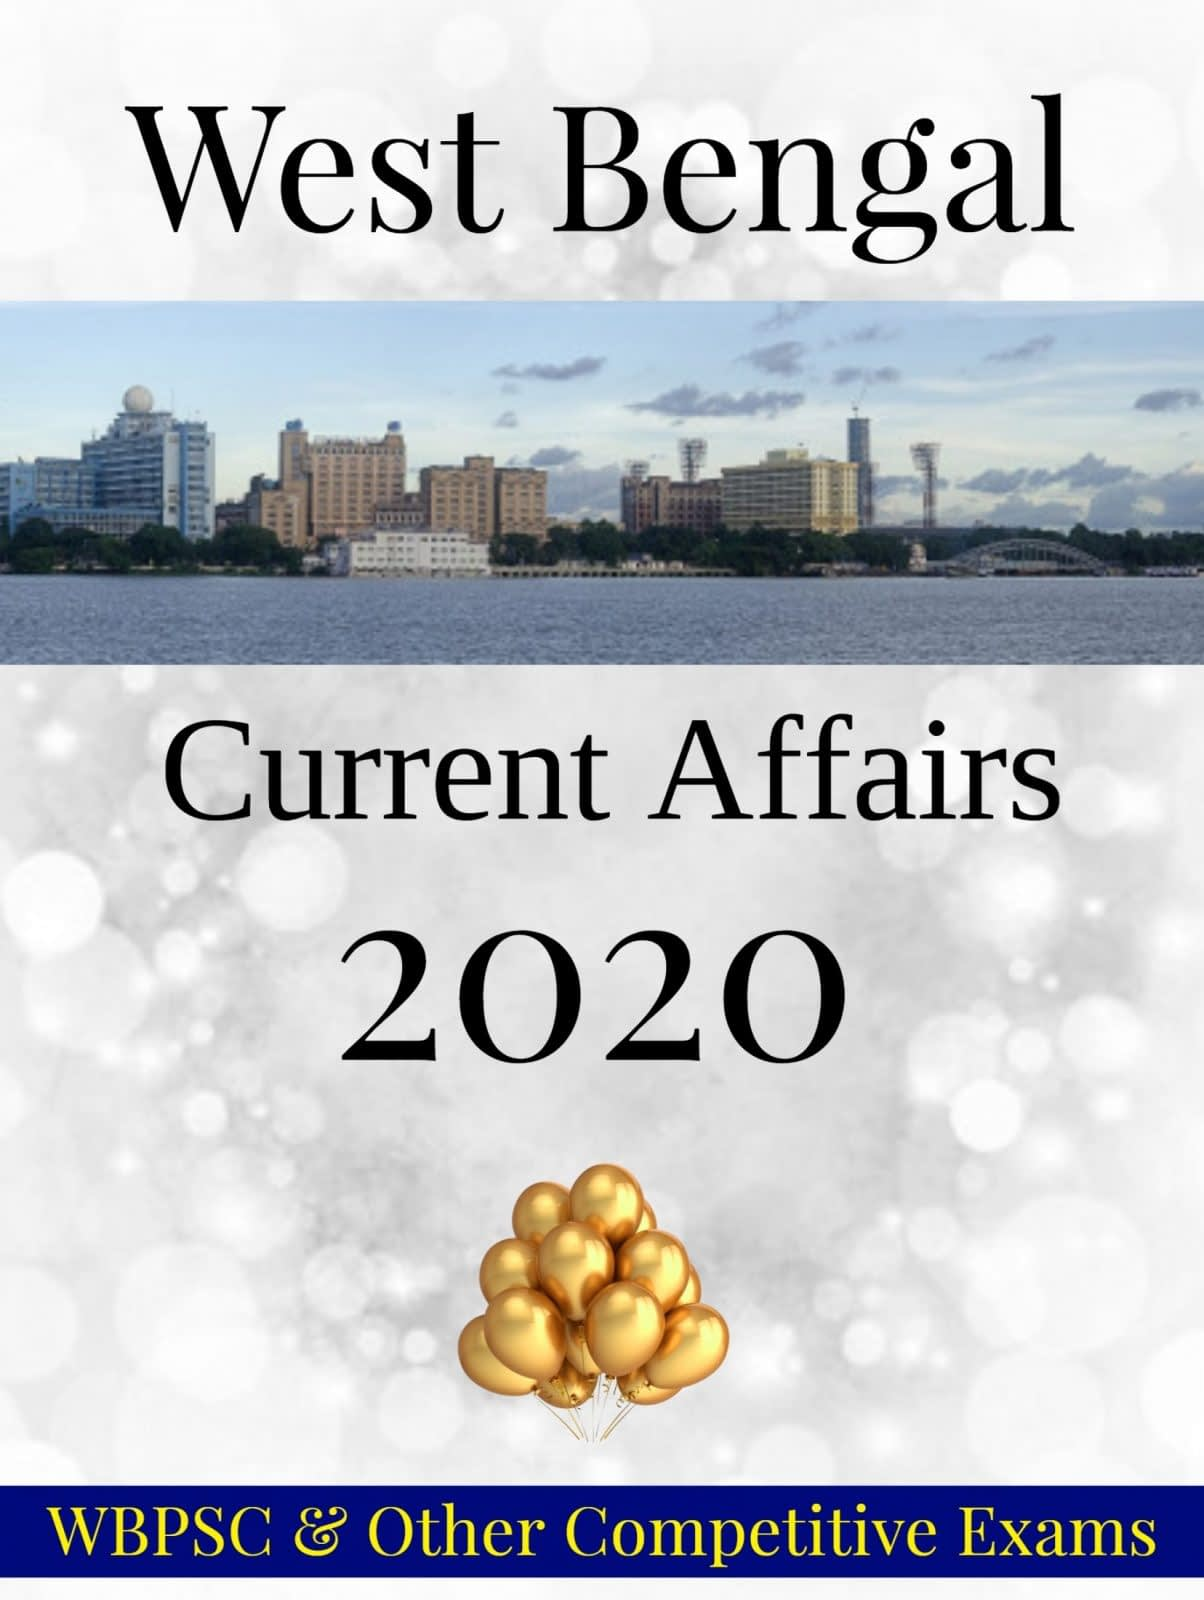 West Bengal Current Affairs Yearbook 2020